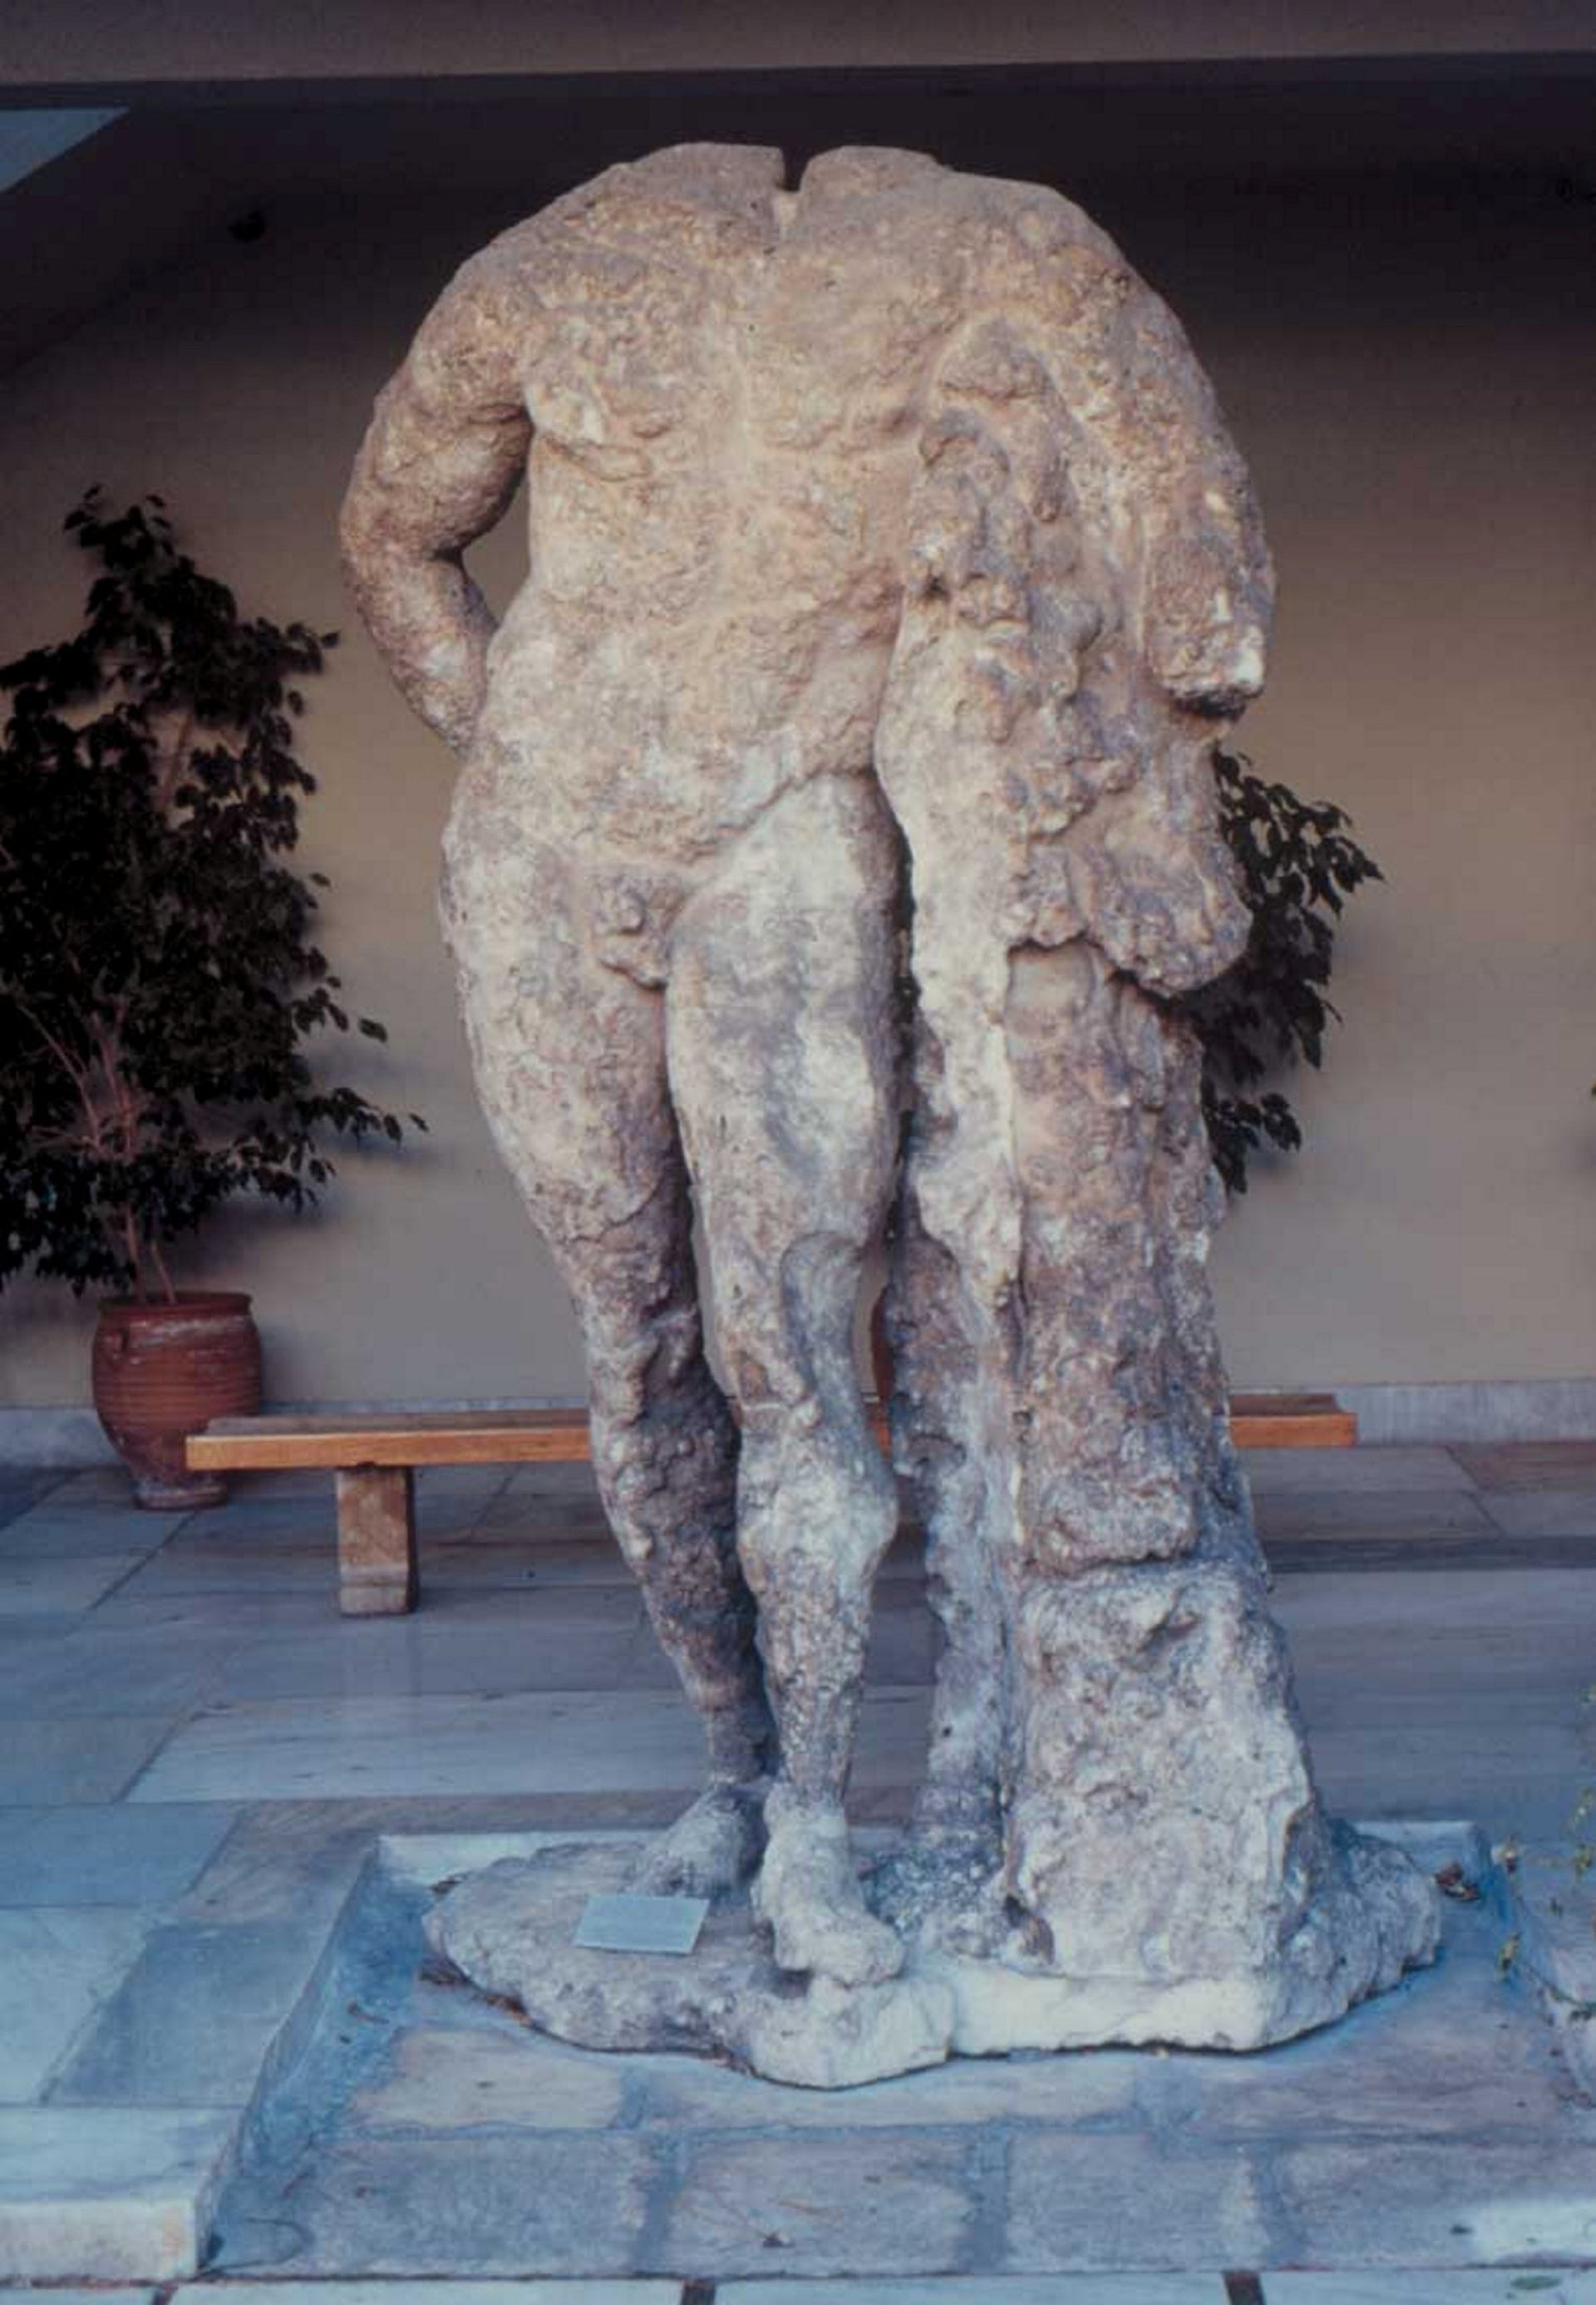 Ancient copy of colossal statue of Herakles discovered by sponge divers in 1901